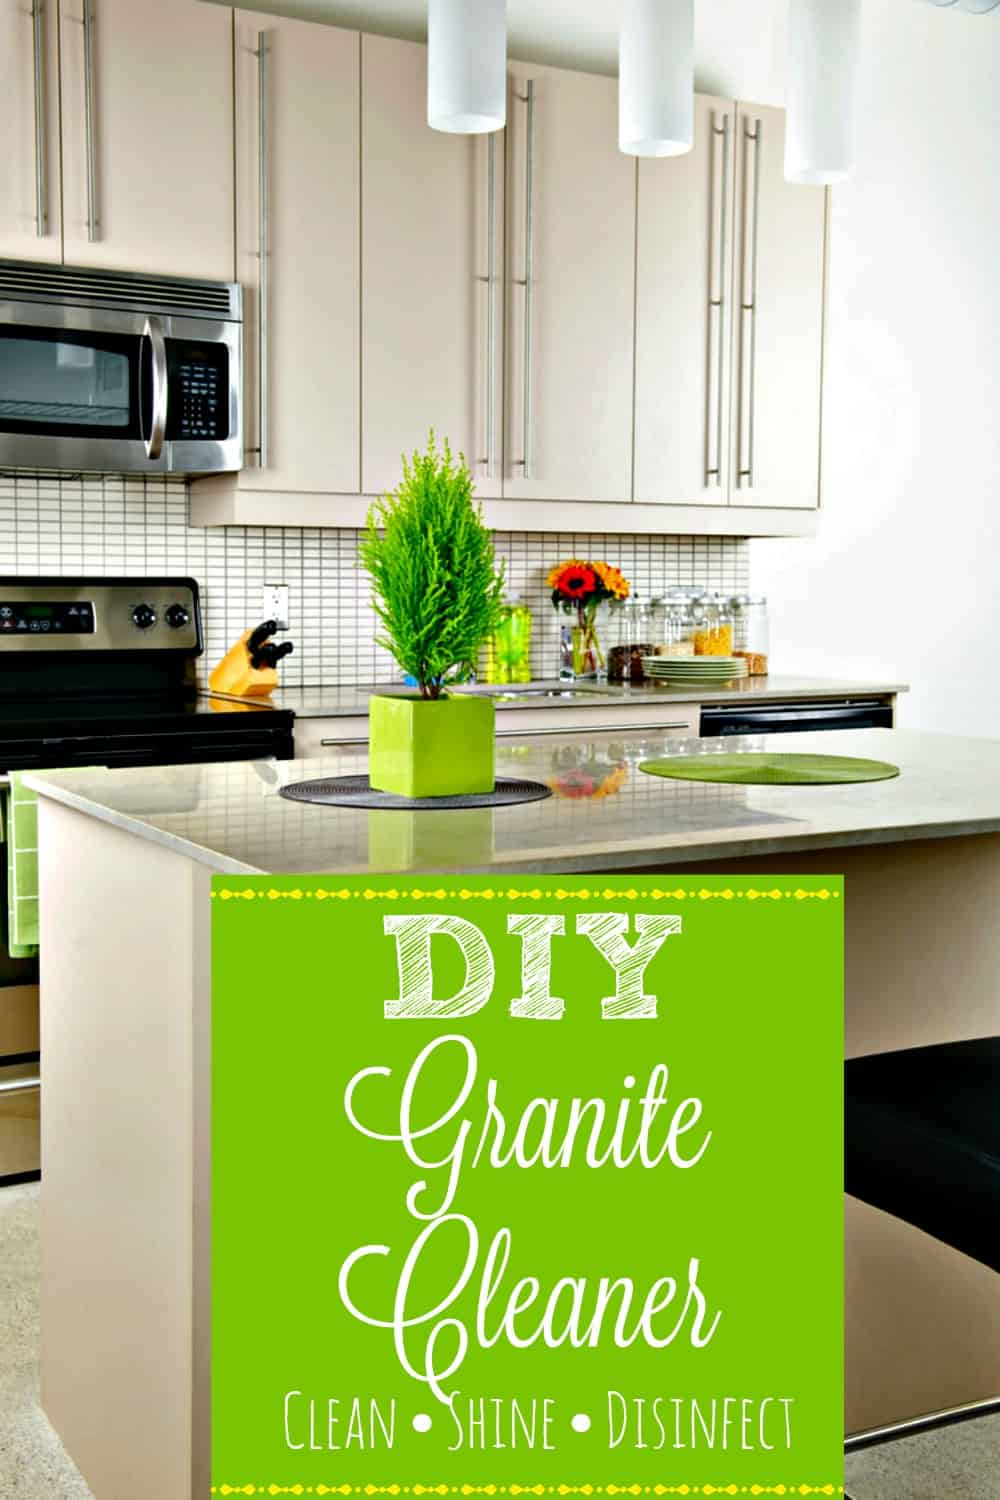 Diy Granite Cleaner Clean Shine And Disinfect In One Spray